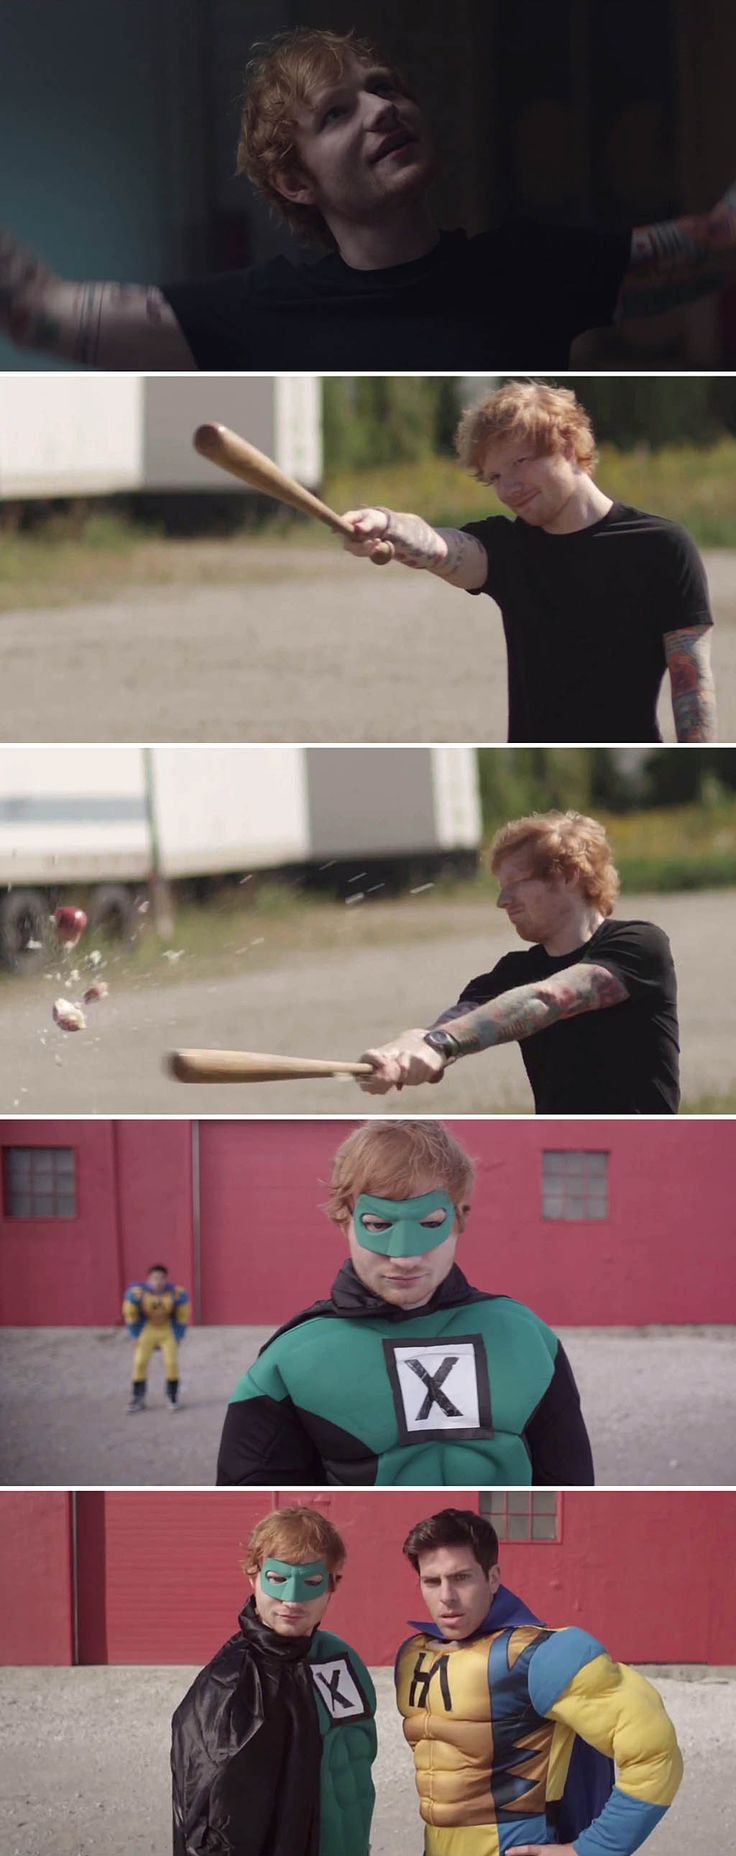 #EdSheeran in #AllAboutIt with #HoodieAllen. Watch the music video here: http://www.creation.com.es/hoodie-allen-all-about-it-ft-ed-sheeran/